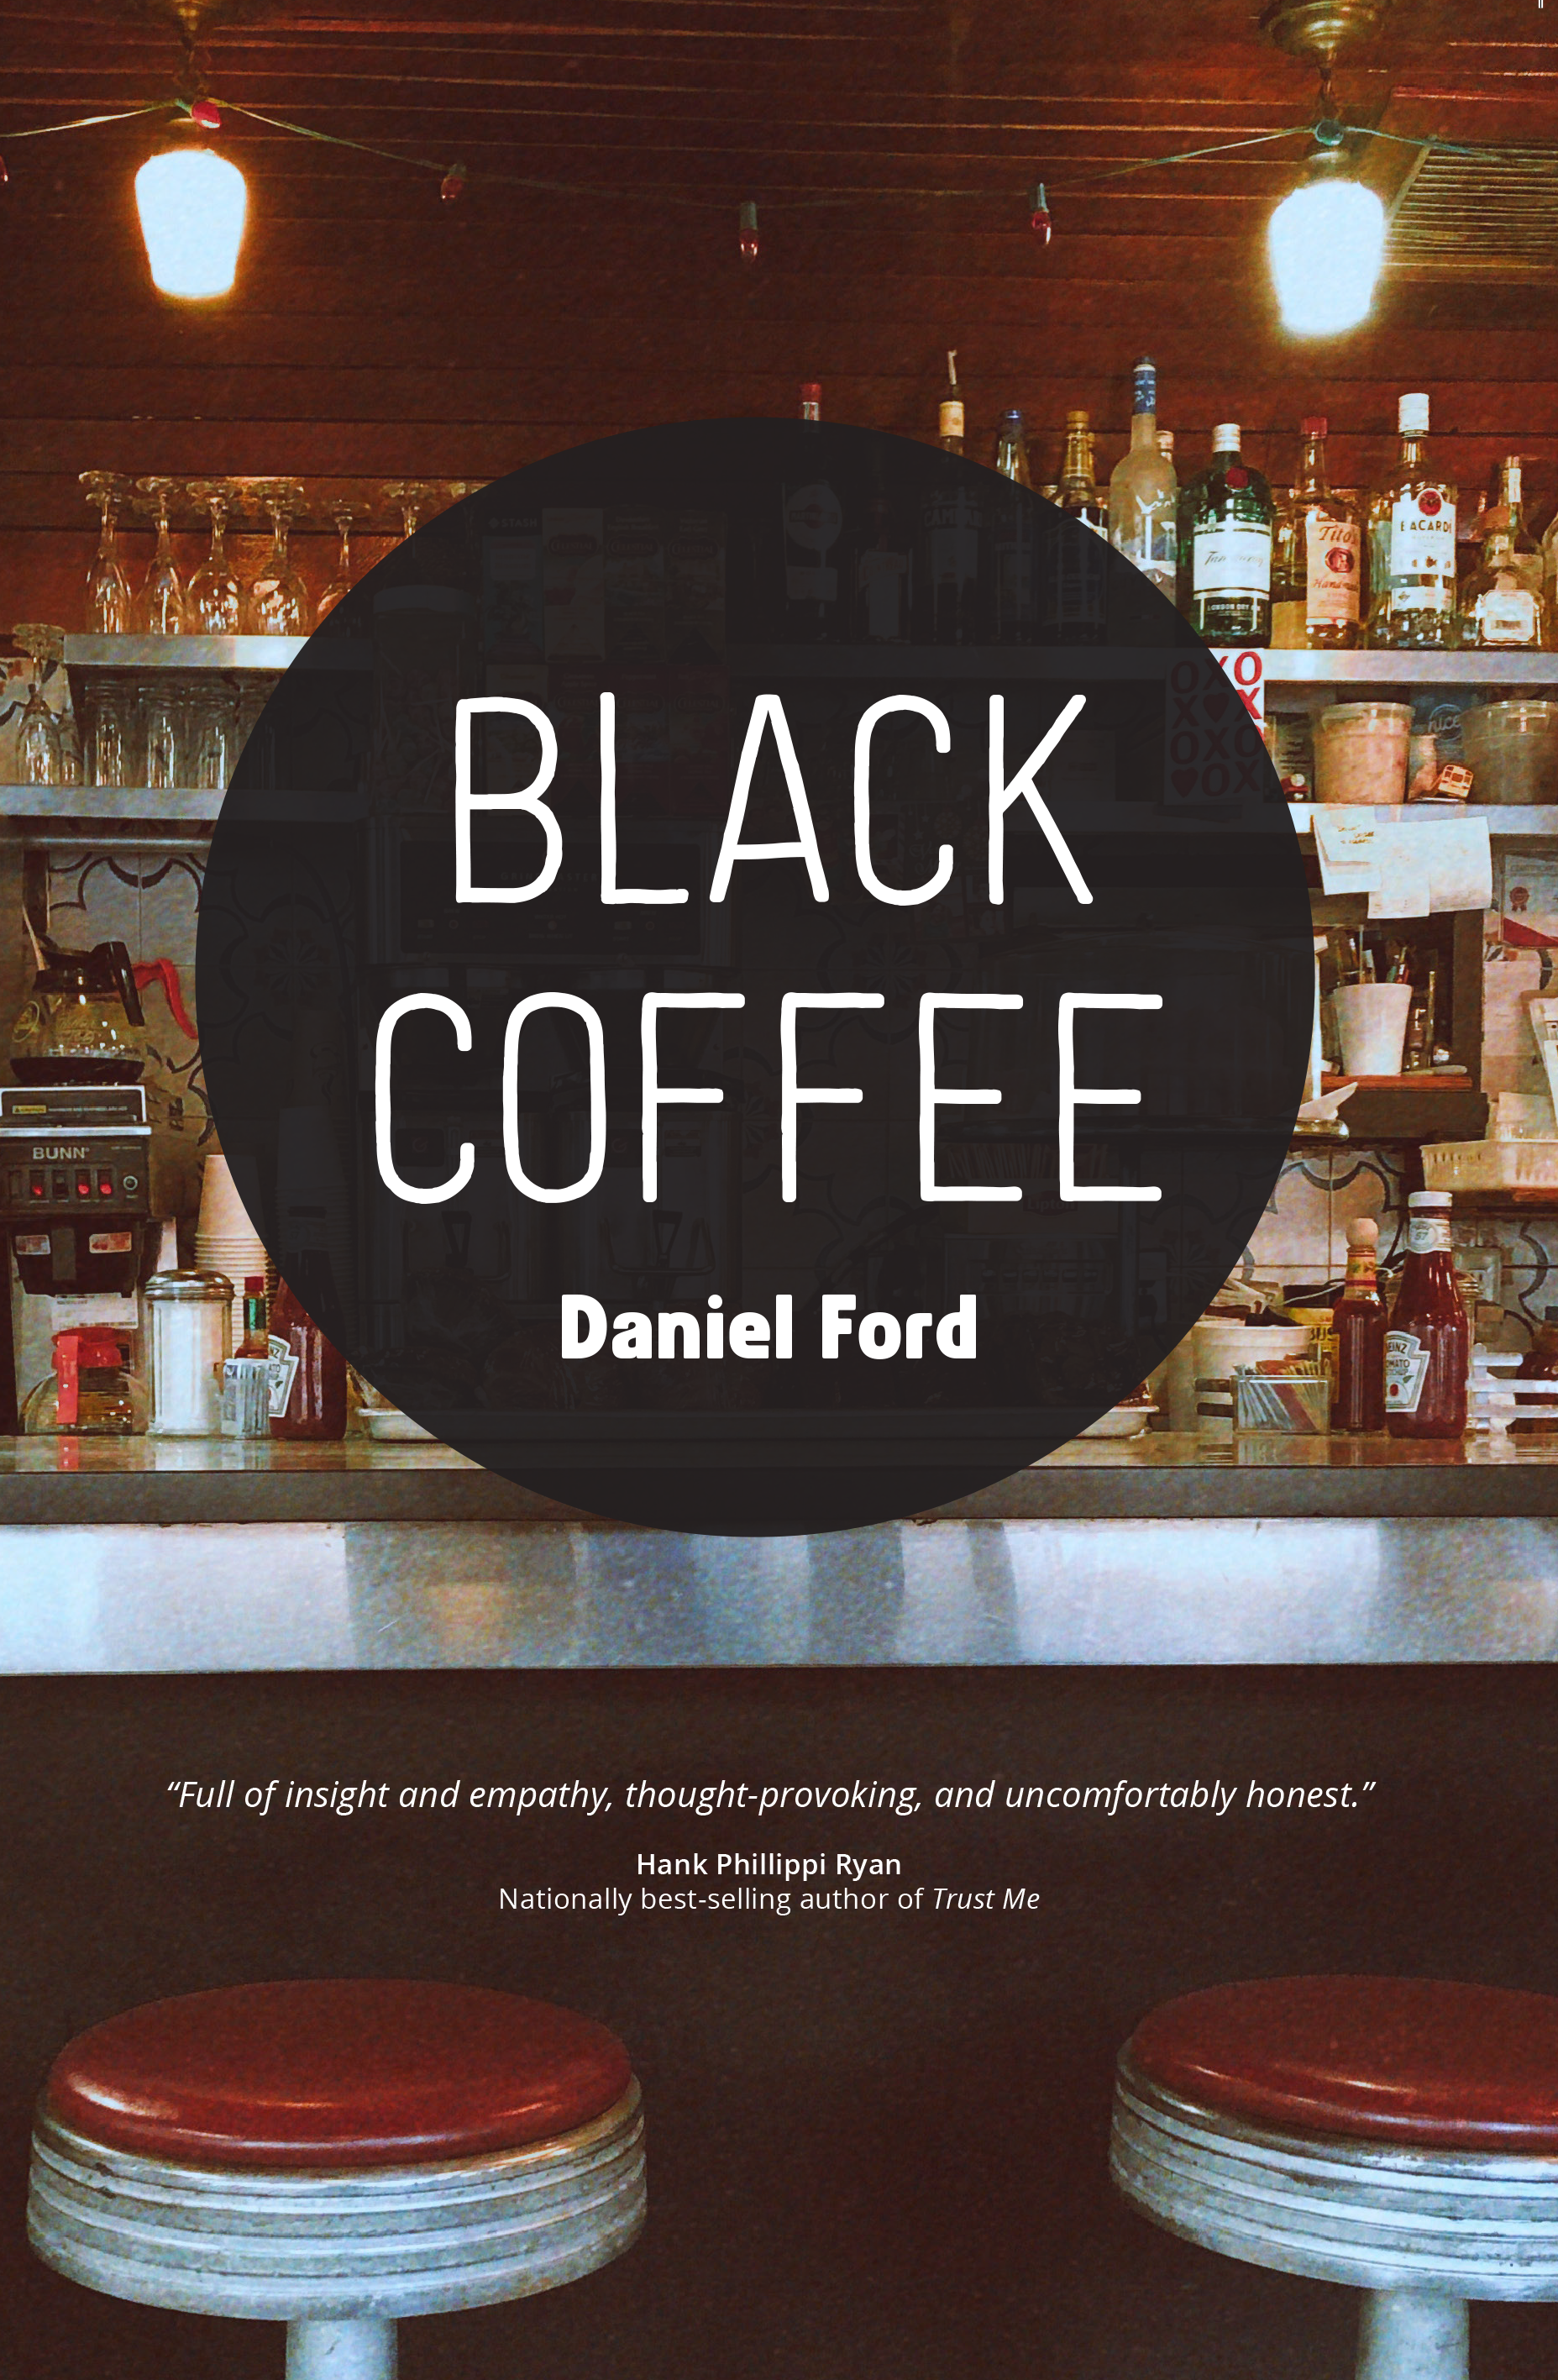 Black Coffee - Black Coffee, a new short story collection from the author of Sid Sanford Lives!, brews together heartsick, overcaffeinated characters and dialogue that sizzles off a greasy diner grill.Enter a mournful veteran's mind as he loses his grip on reality. Join an all-female extermination squad hunting down despicable men. Wait at the bar with two soul mates as they battle their stormy past and try to bring a cold love back to a boil.These nine moving, funny, and, at times, terrifying stories explore how people meander in and out of each other's lives, why family bonds are the hardest to navigate and break, and how hope lights a path even in the darkest of coffee cups.Cover design: Jonathan LeePhoto credit: Cristina Cianci